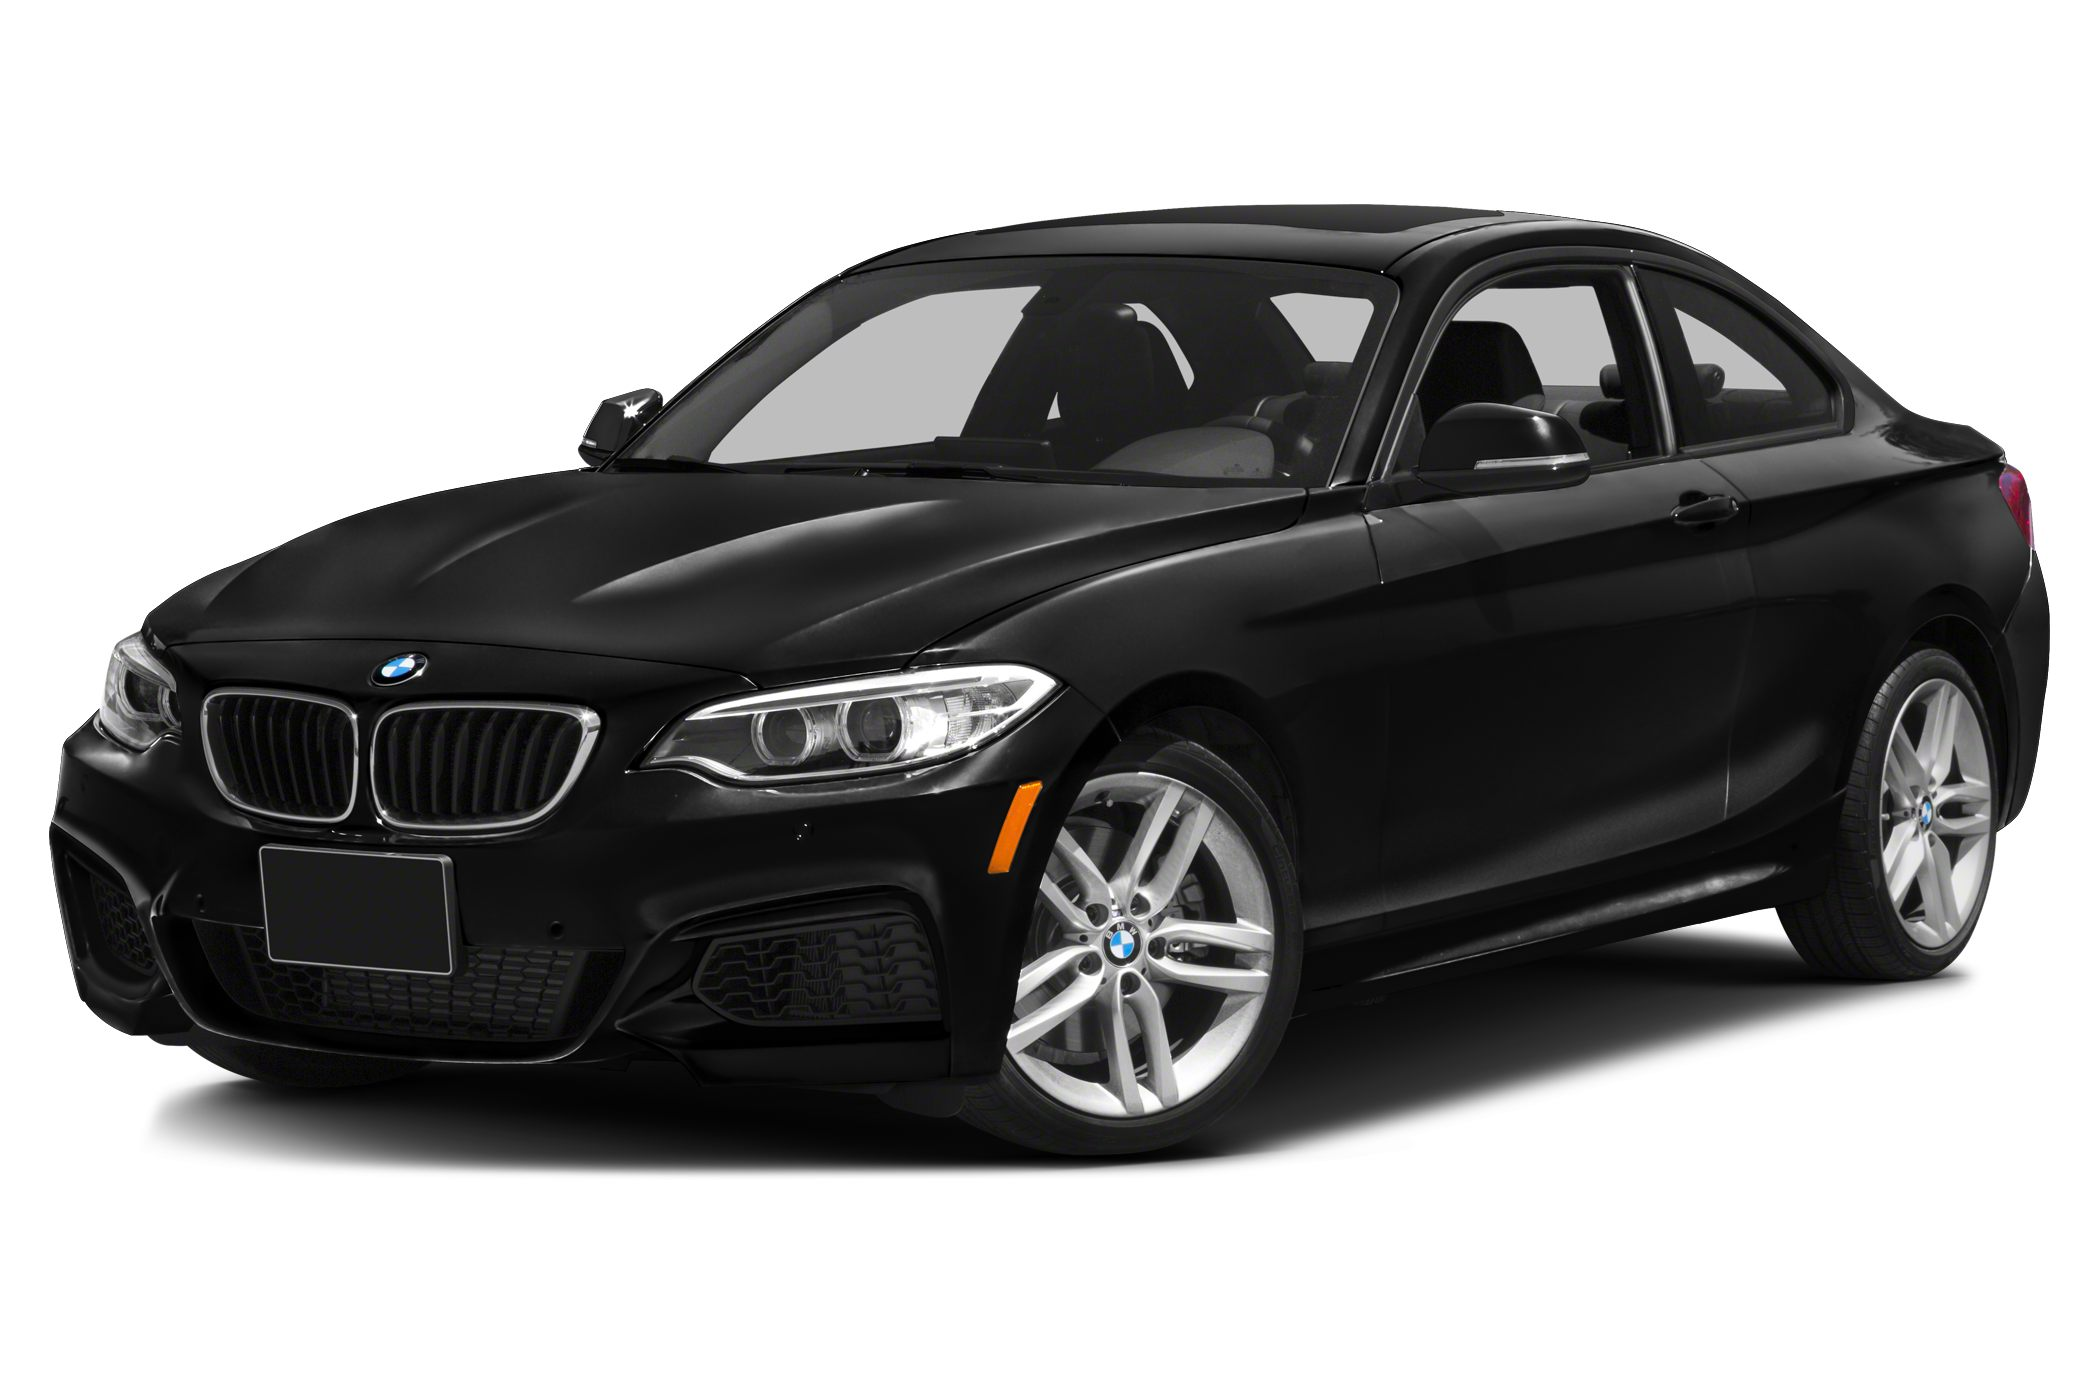 2015 BMW 228 I XDrive Coupe for sale in Chicago for $43,750 with 4 miles.